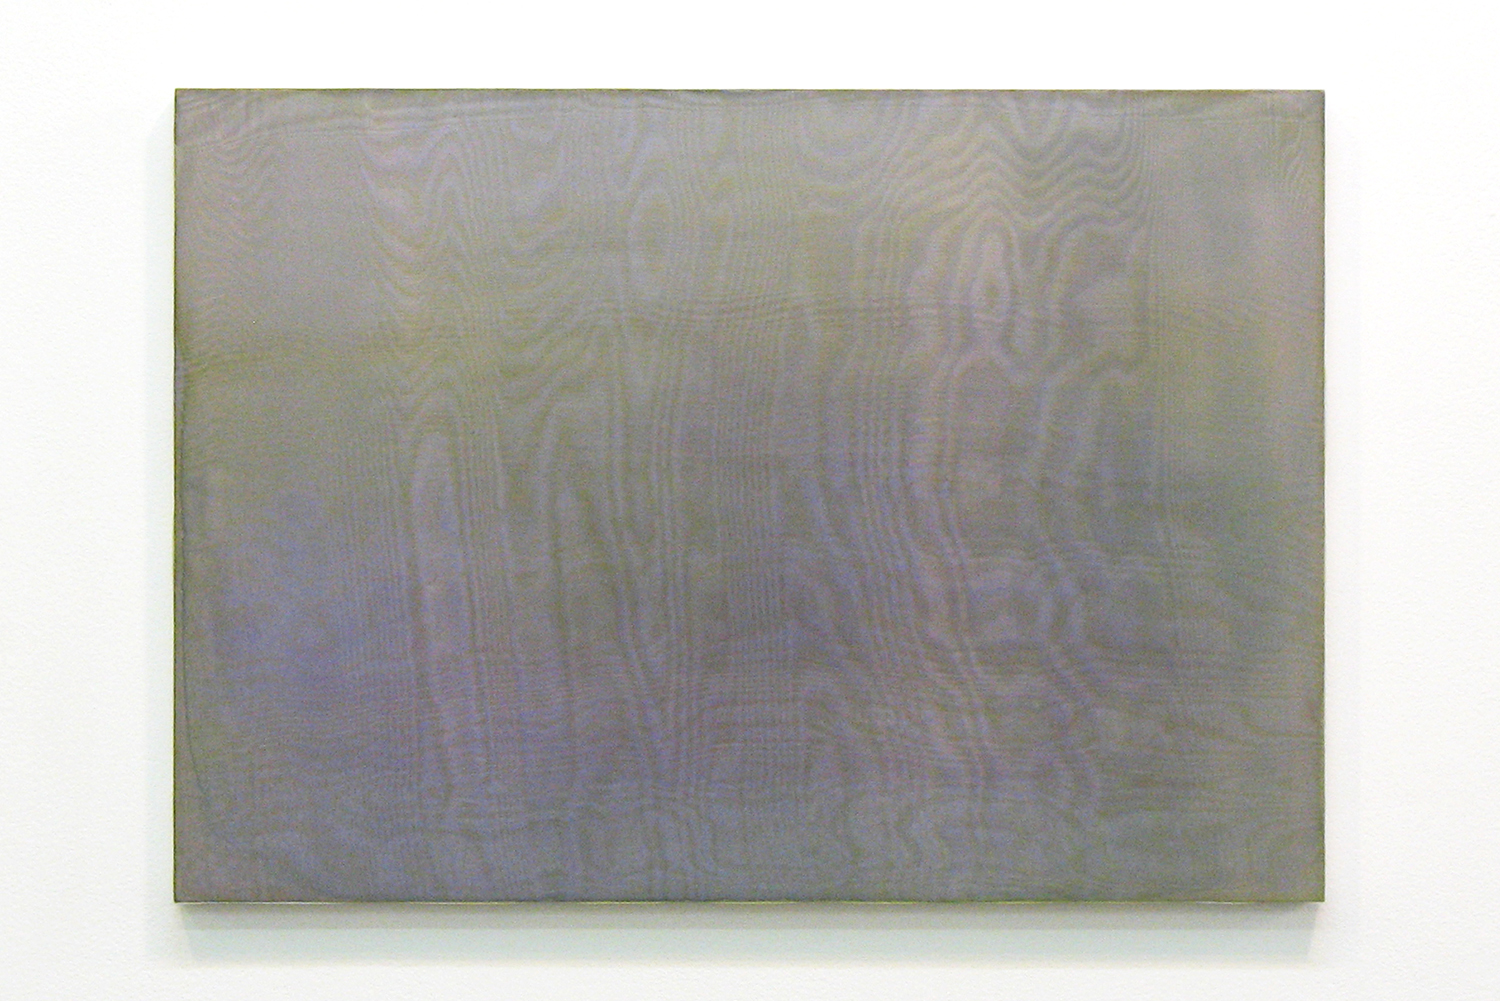 中空 0909 (hollowness 0909)|panel, stainless steel sheet, glass organdy, acrylic|363  x 515 mm|2009